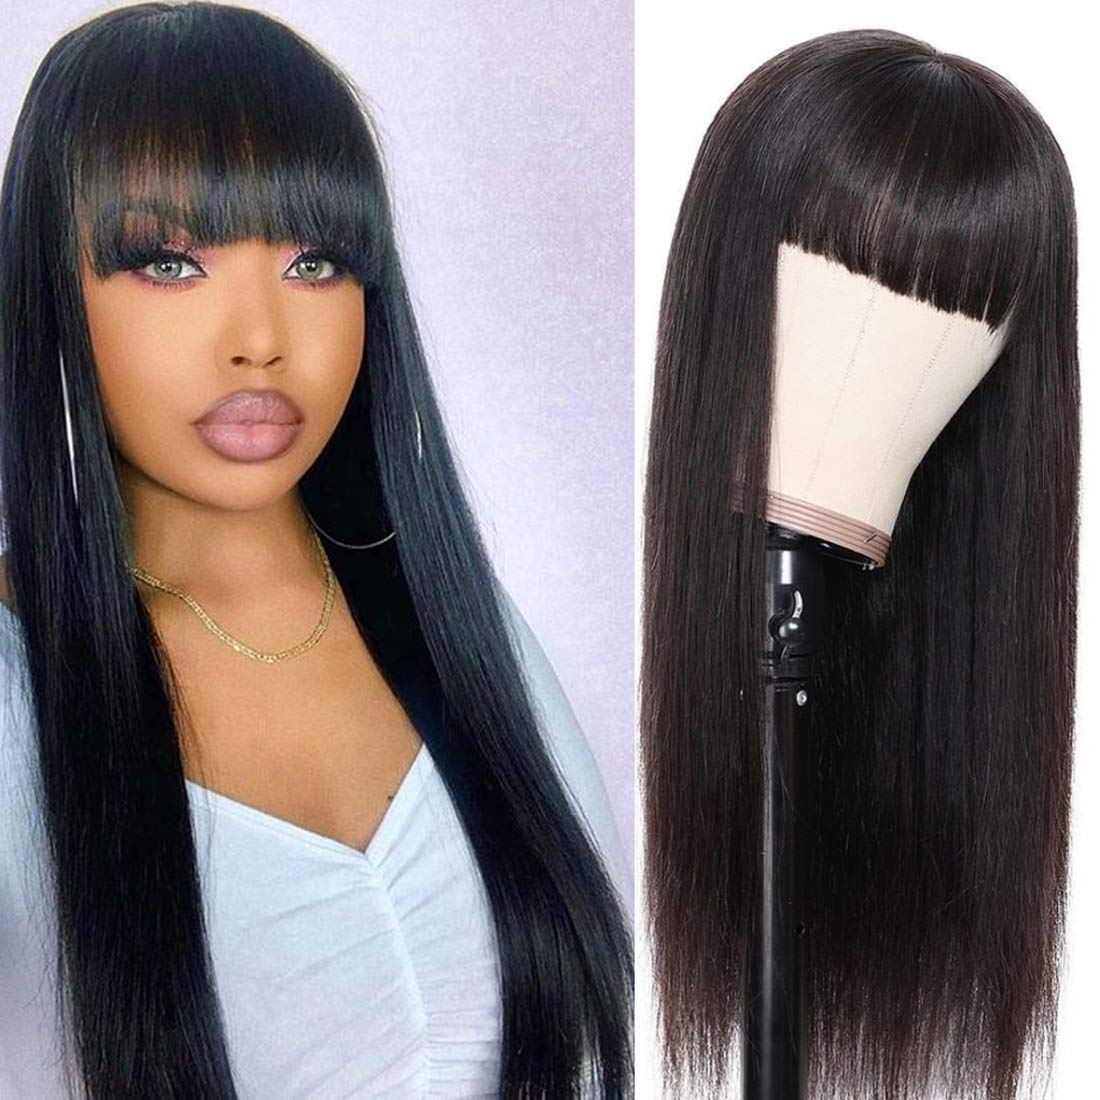 Challenge the lowest Manufacturer regenerated product price of Japan ANNELBEL Human Hair Wigs for Brazilia Black Women Straight Silky